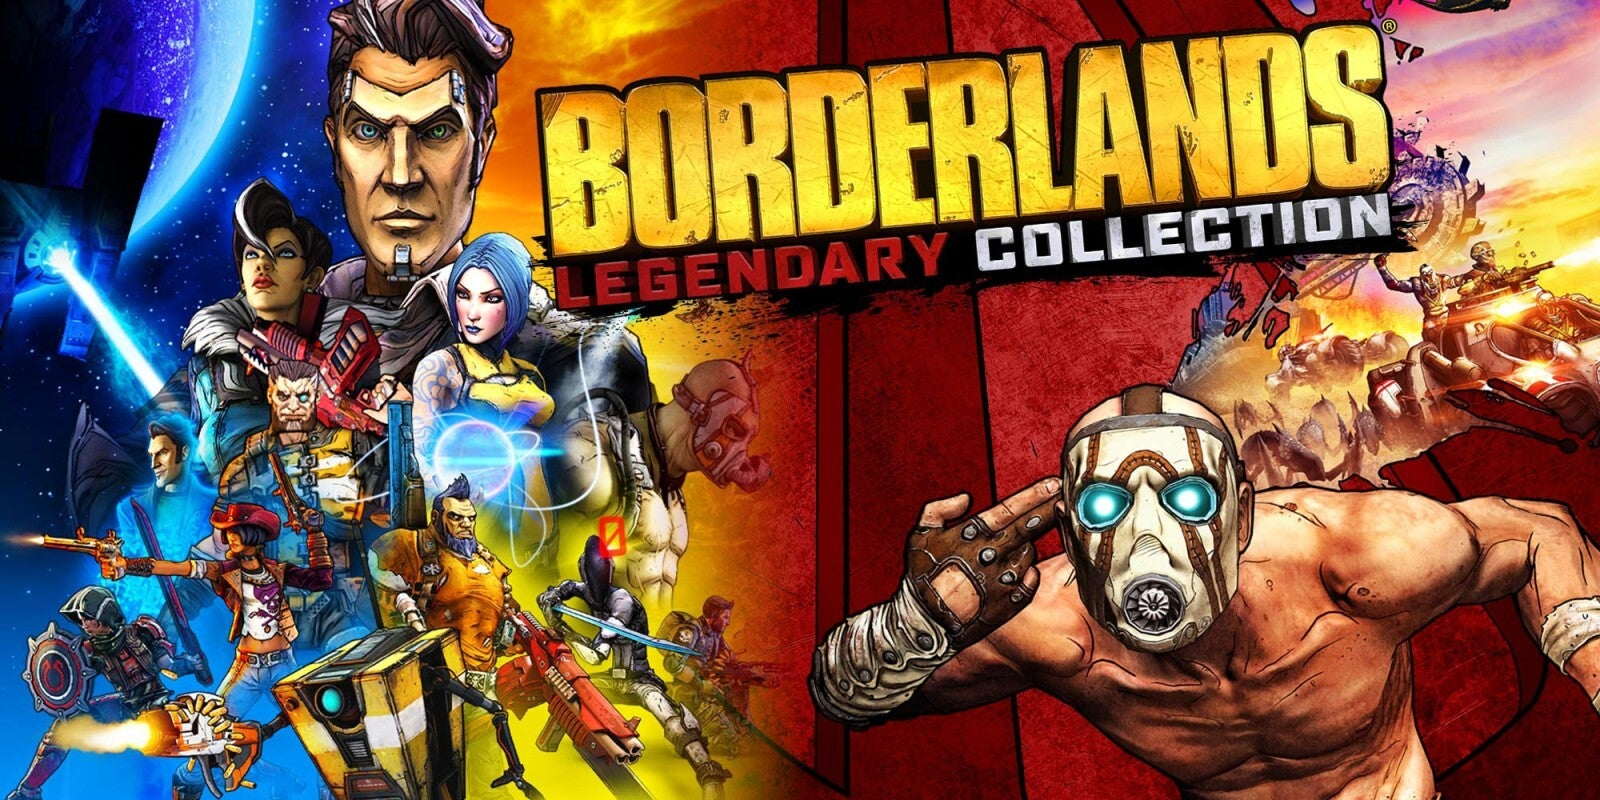 Borderlands Legendary Collection (Nintendo Switch) Review | Trusted Reviews